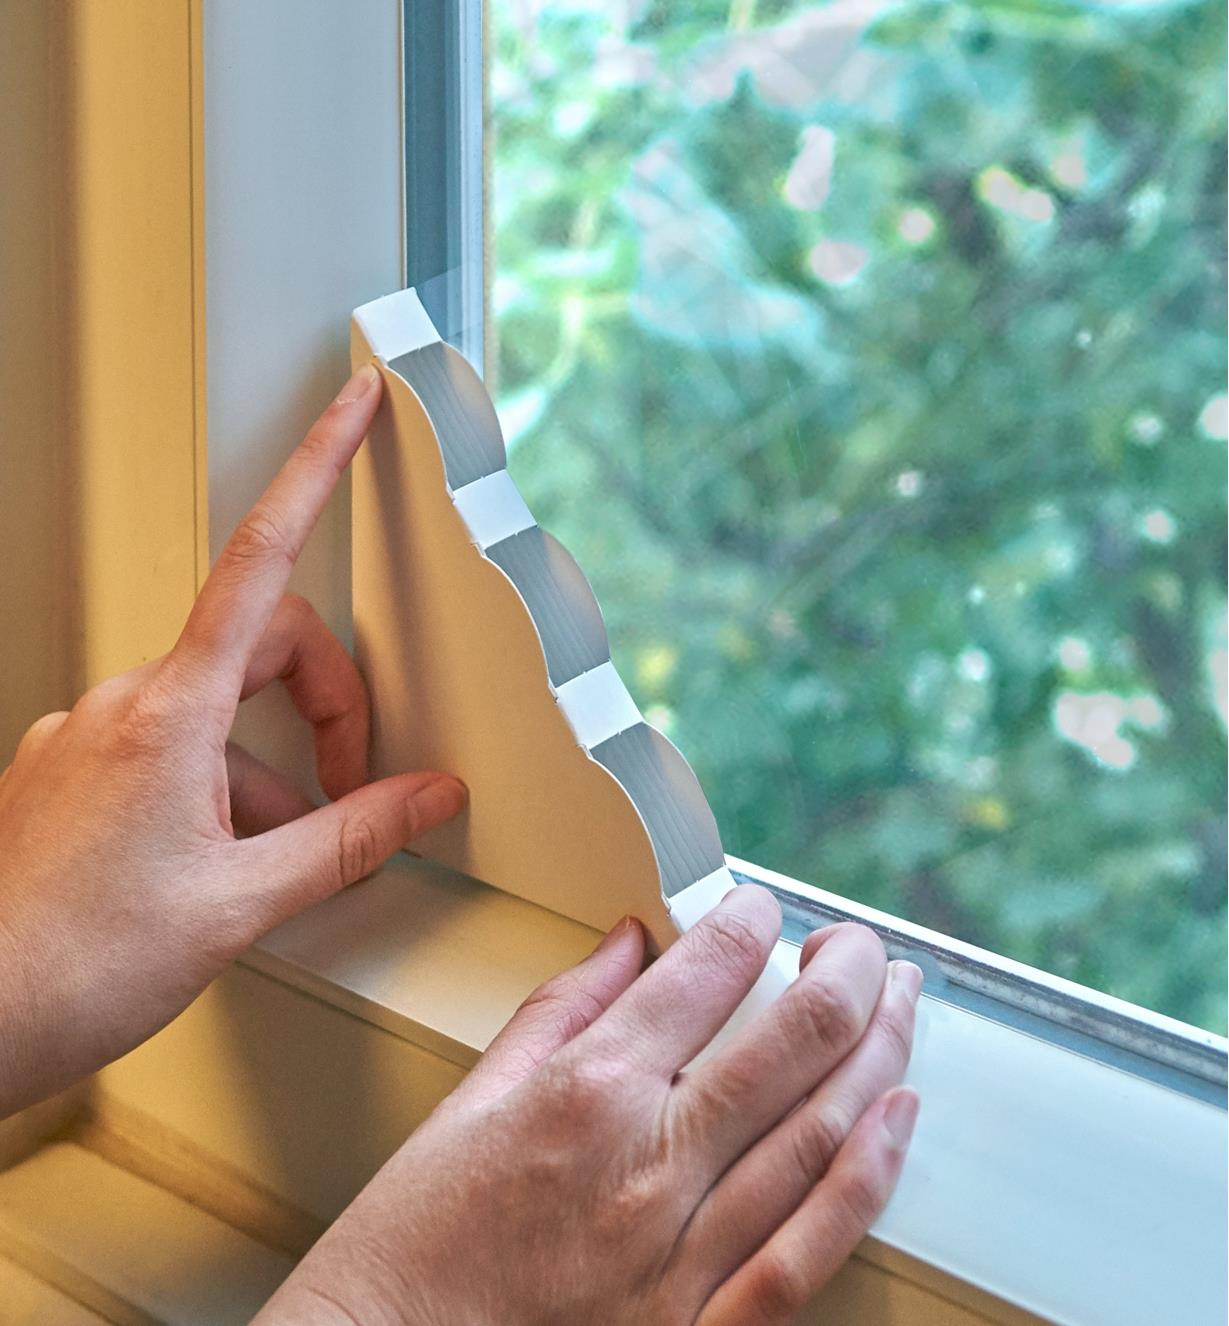 Placing a Window Fly Trap in the bottom corner of a window